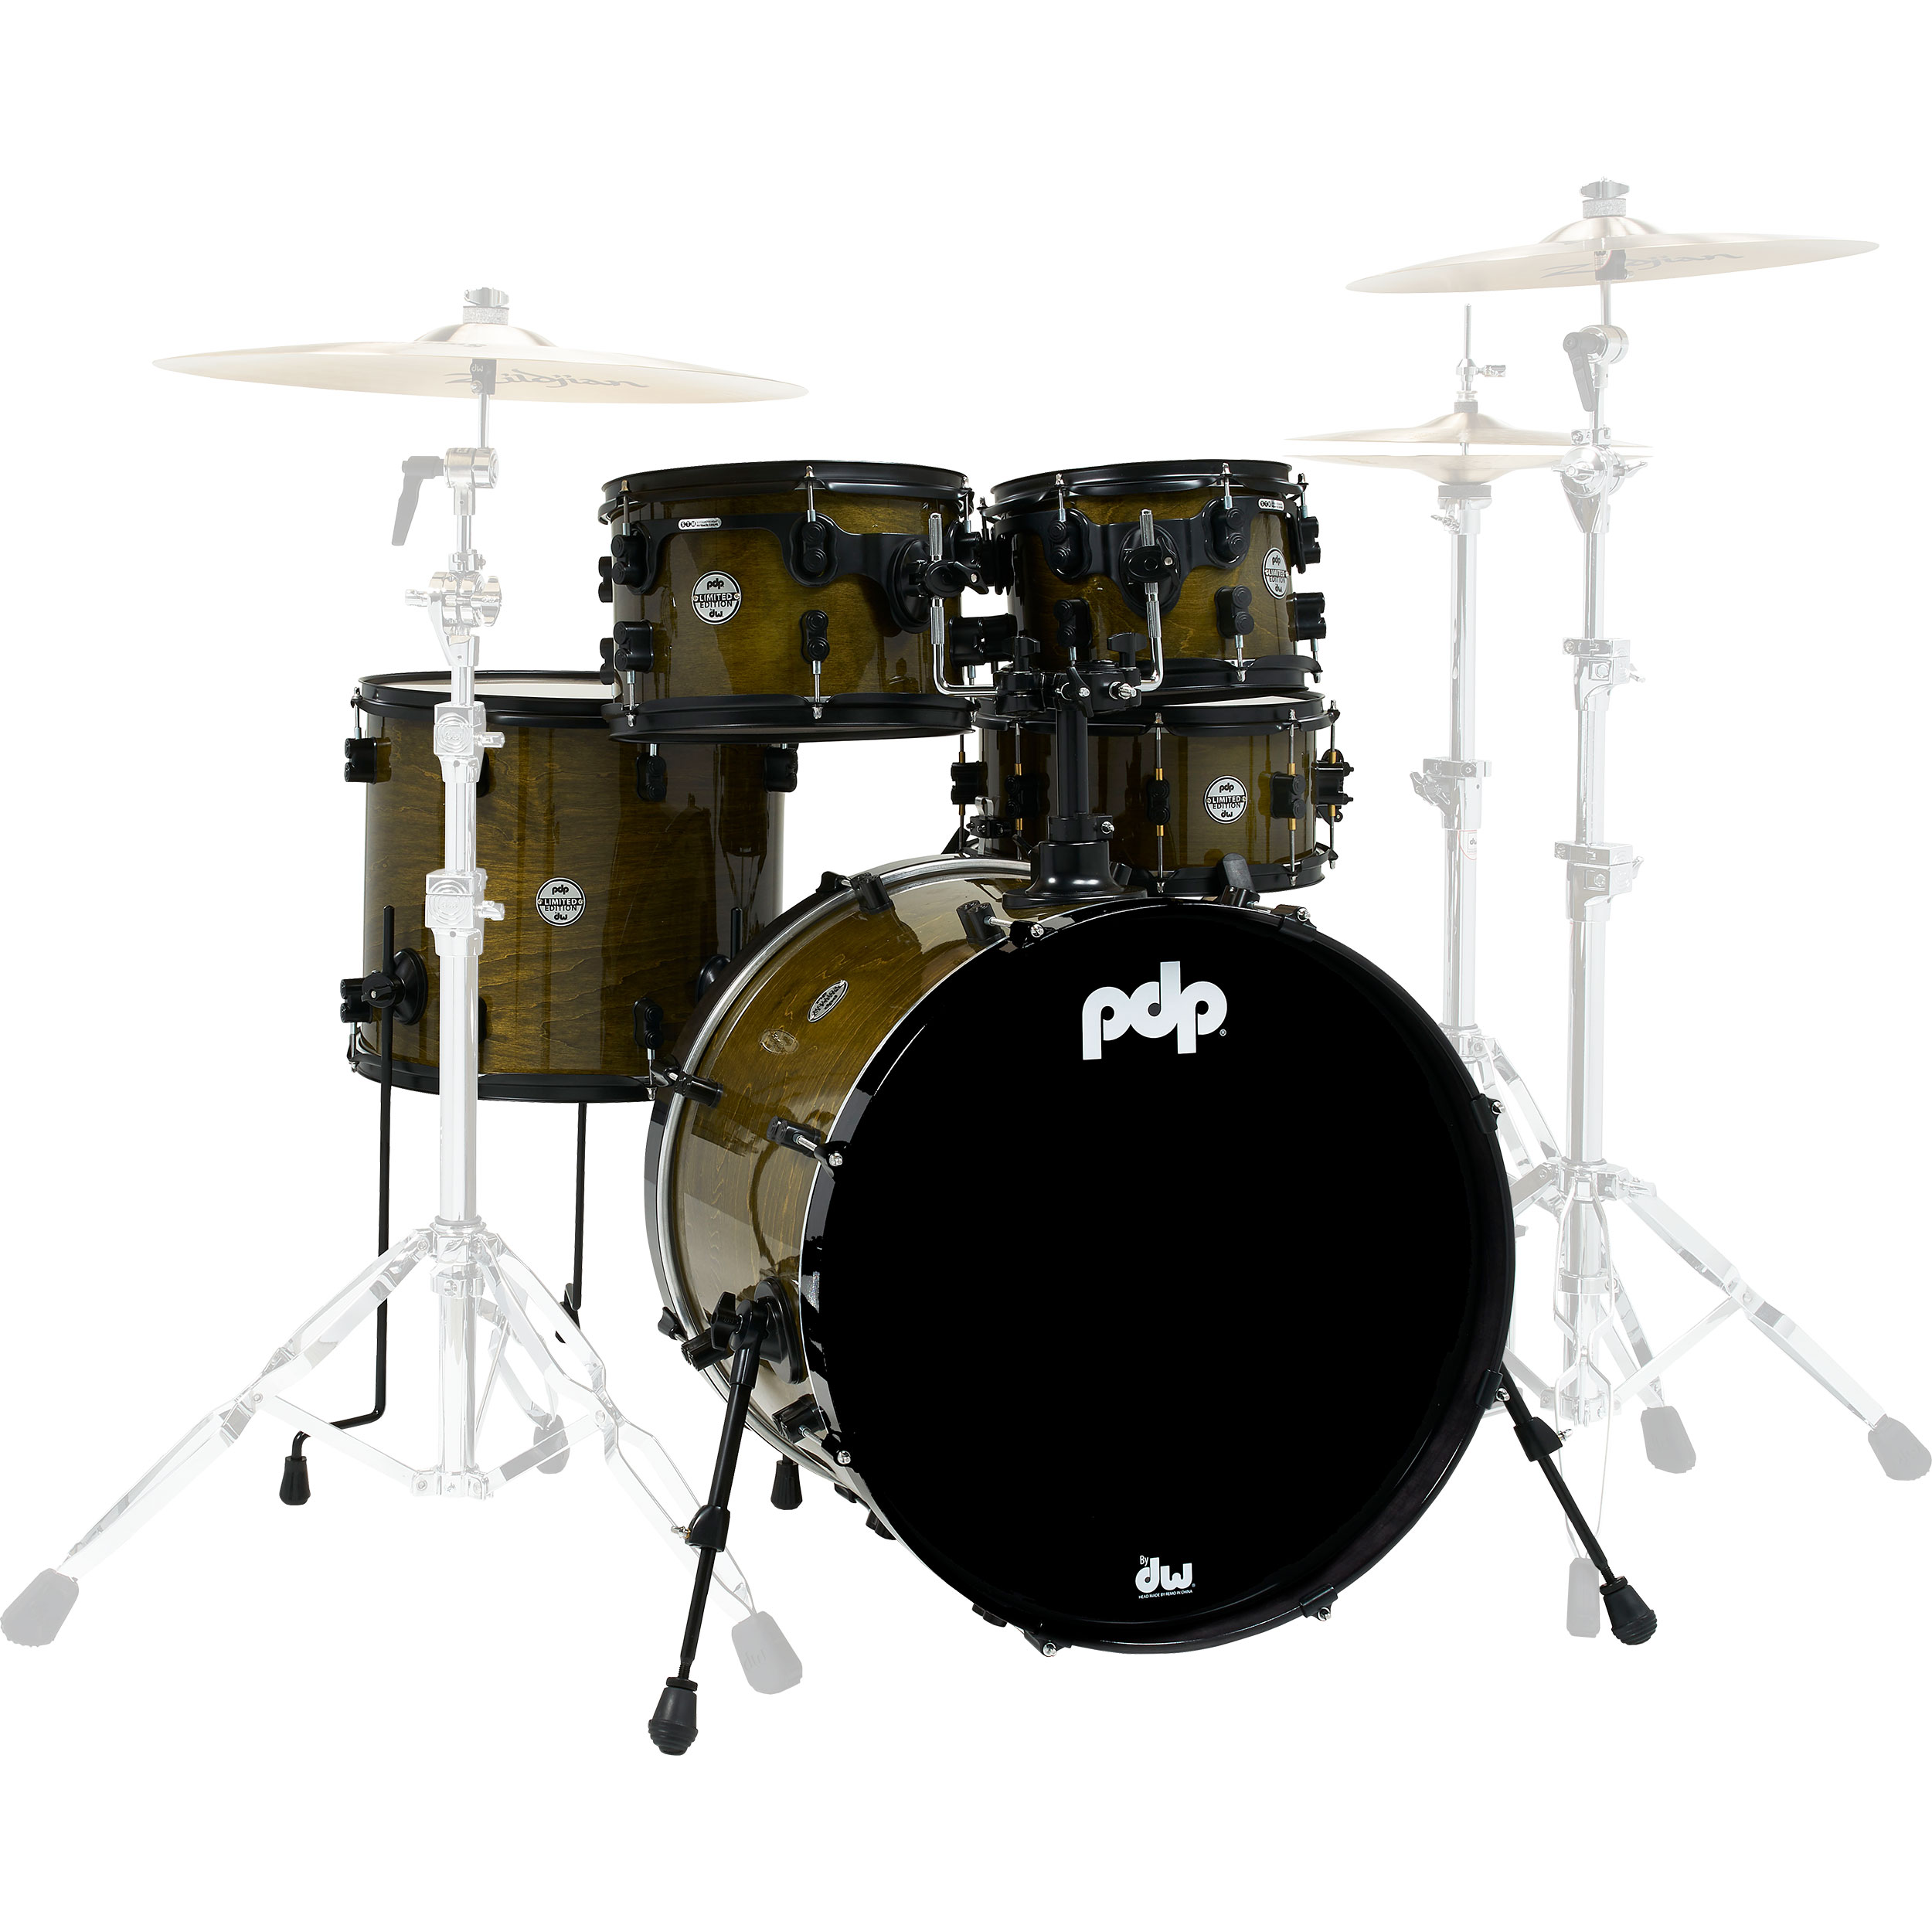 """PDP Limited Edition 5-Piece Drum Set Shell Pack (22"""" Bass, 10/12/16"""" Toms, 13"""" Snare) in Olive Stain Lacquer"""